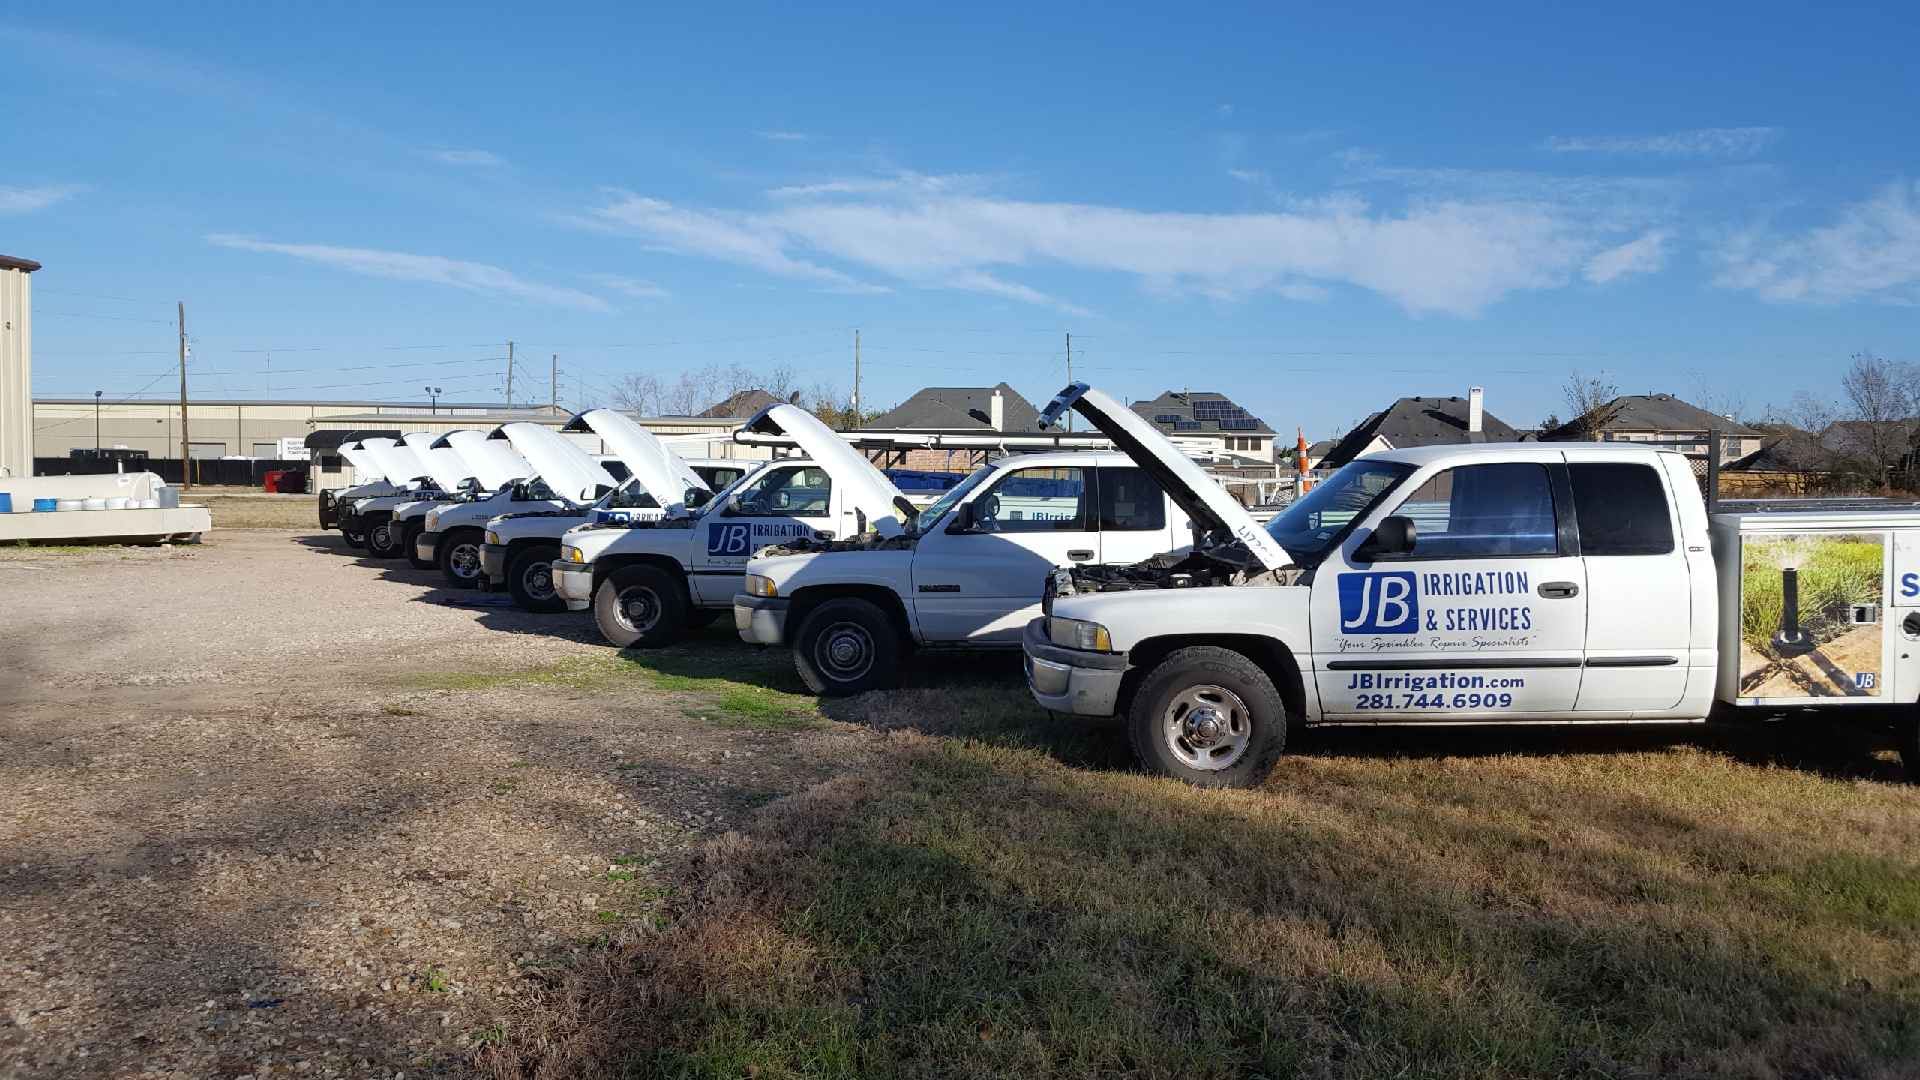 Getting Our Fleet Ready For Your Sprinkler System Service Calls – Oil Change And Fleet Maintenance Days At JB Irrigation